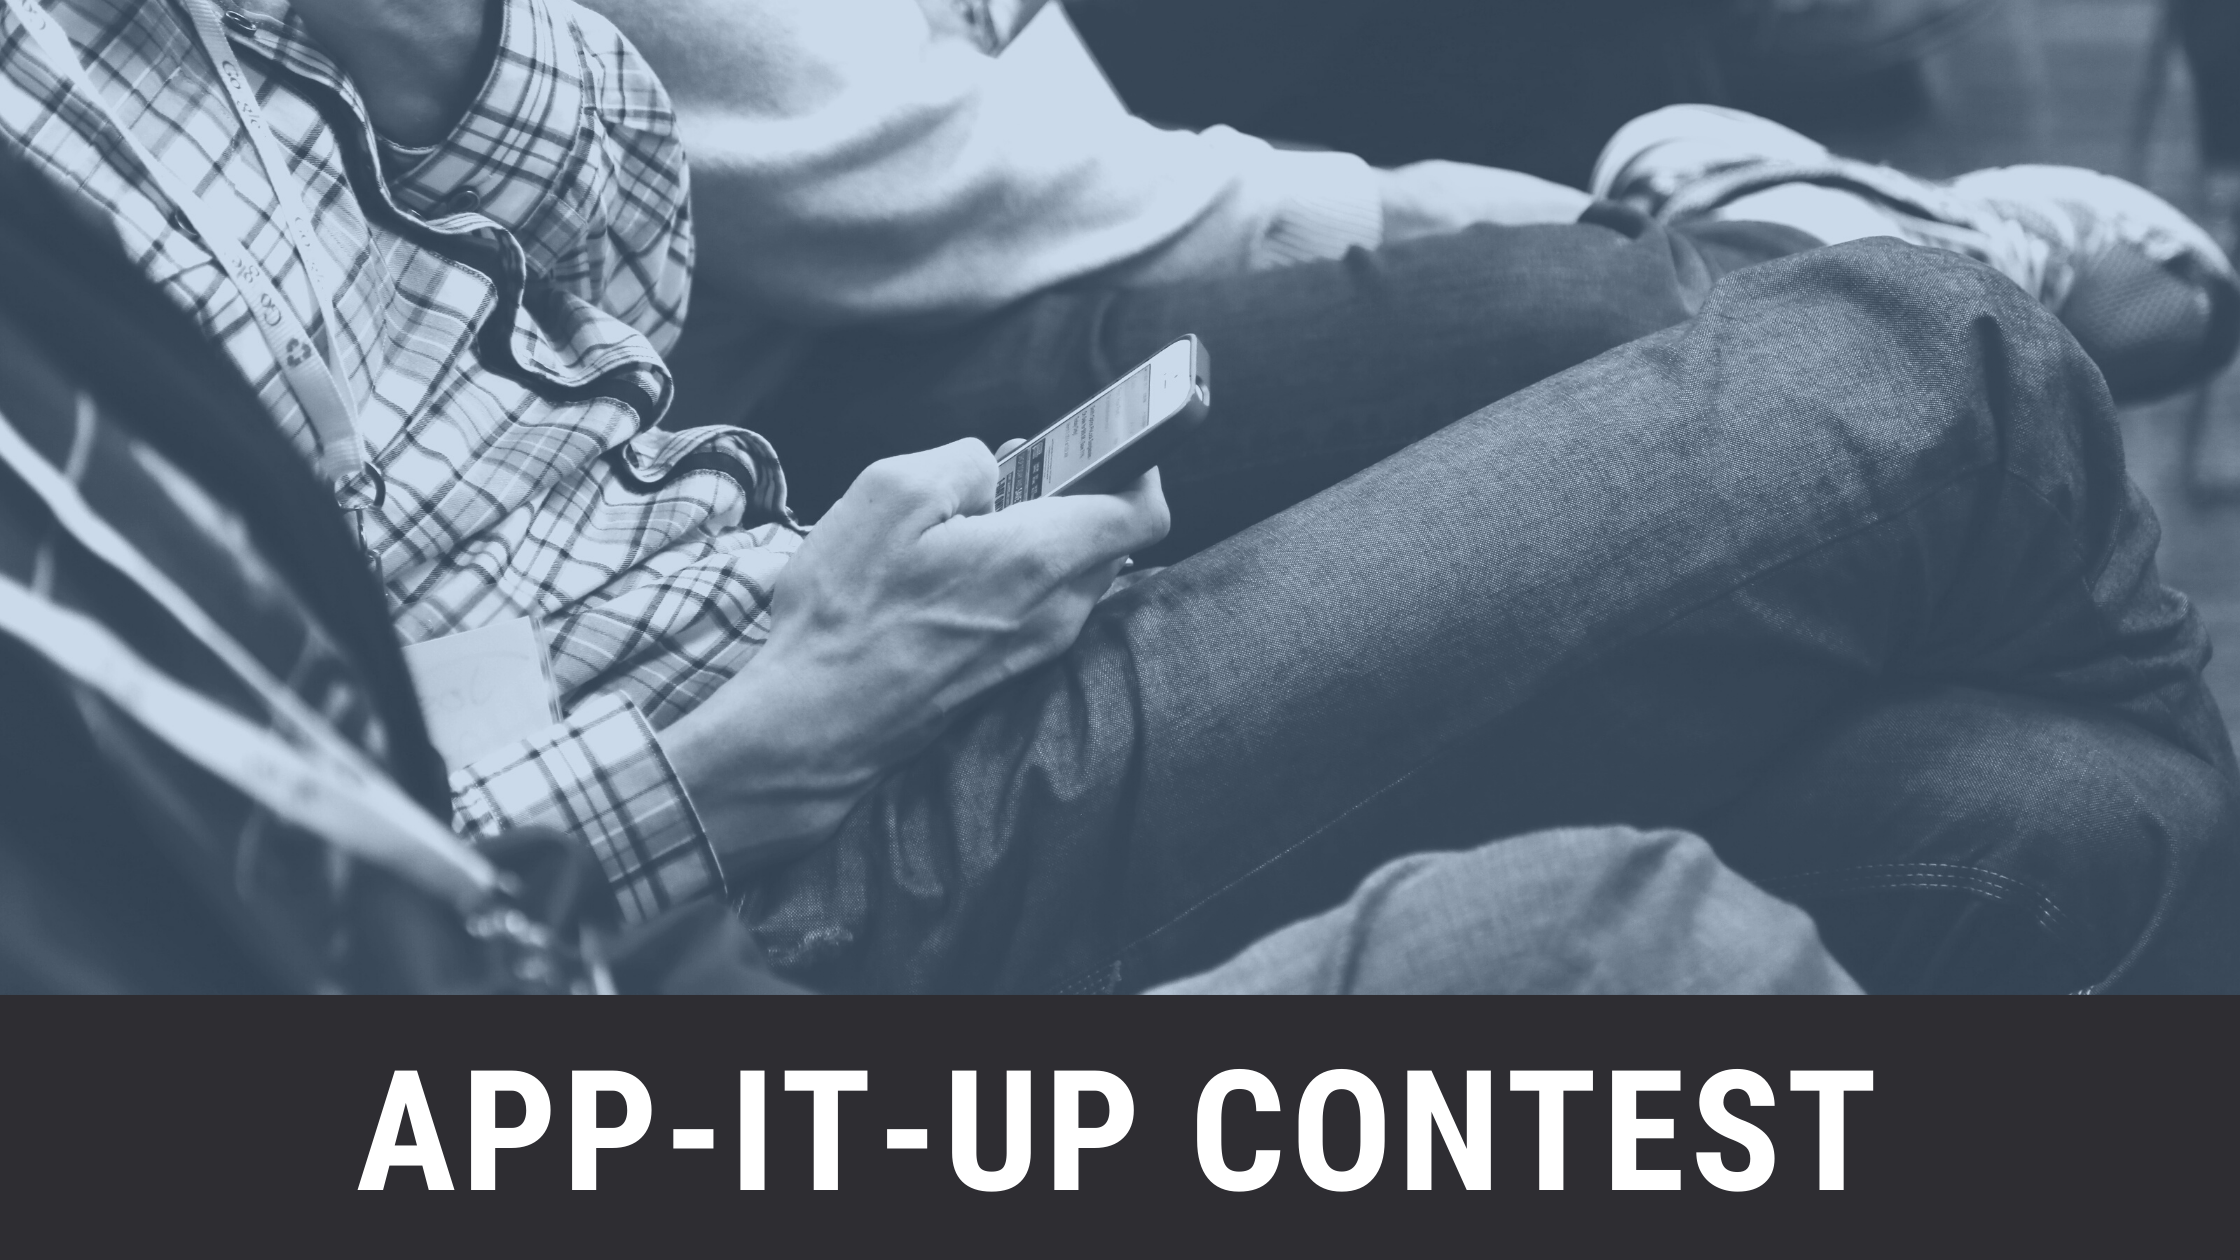 App-It-Up Contest